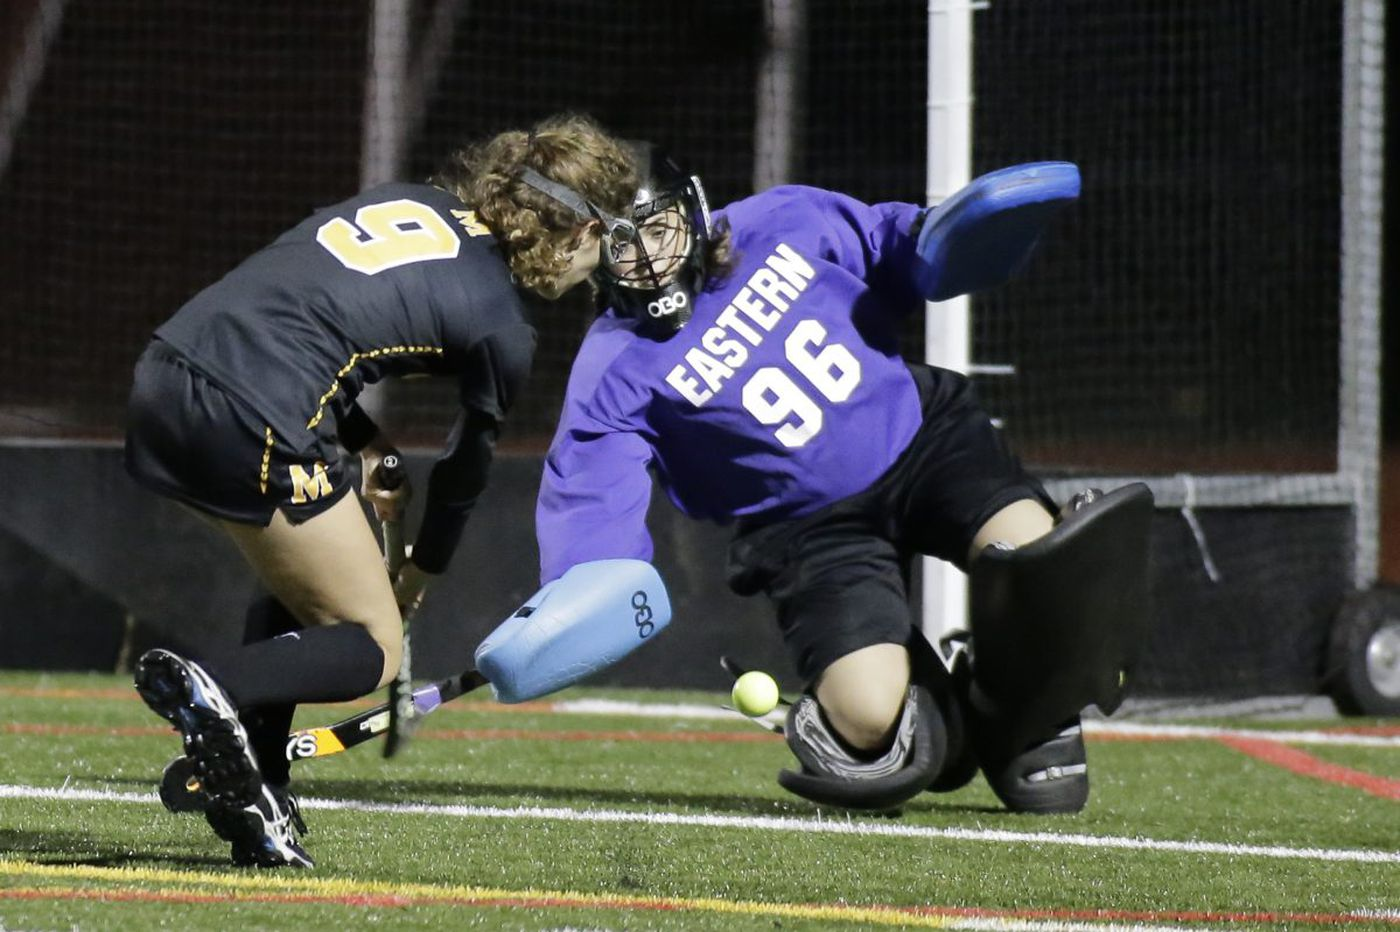 Eastern loses to Oak Knoll in field hockey Tournament of Champions, but the future looks bright